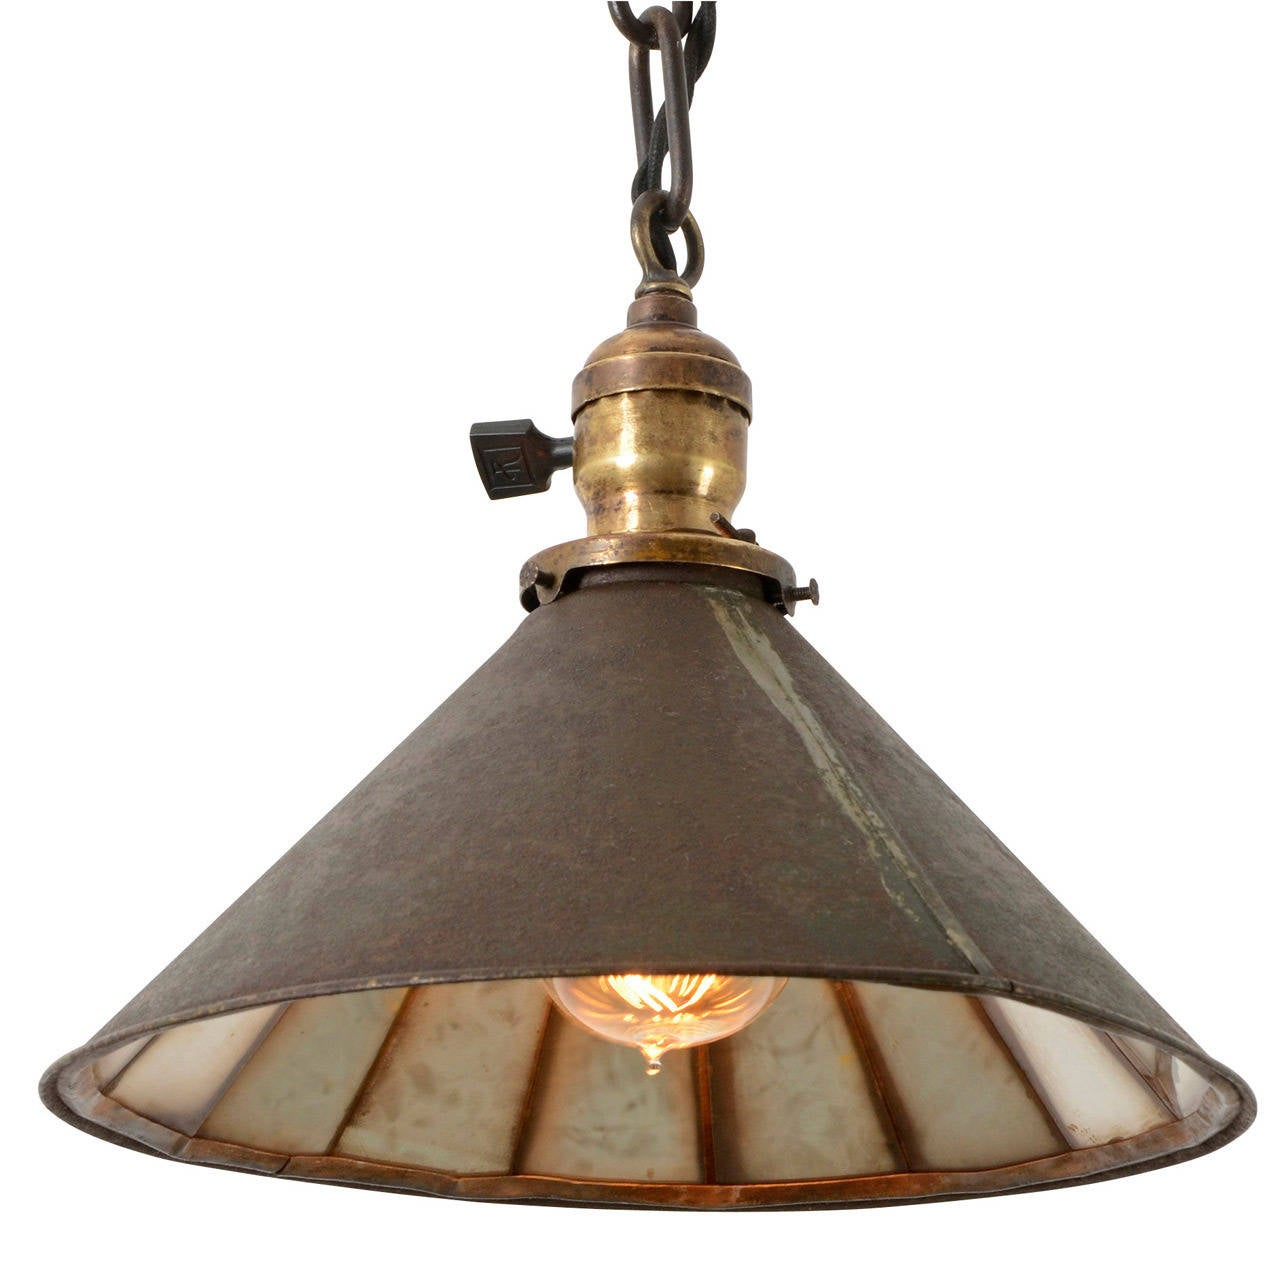 Industrial Chain Pendant Light With Mirror Reflector Shade